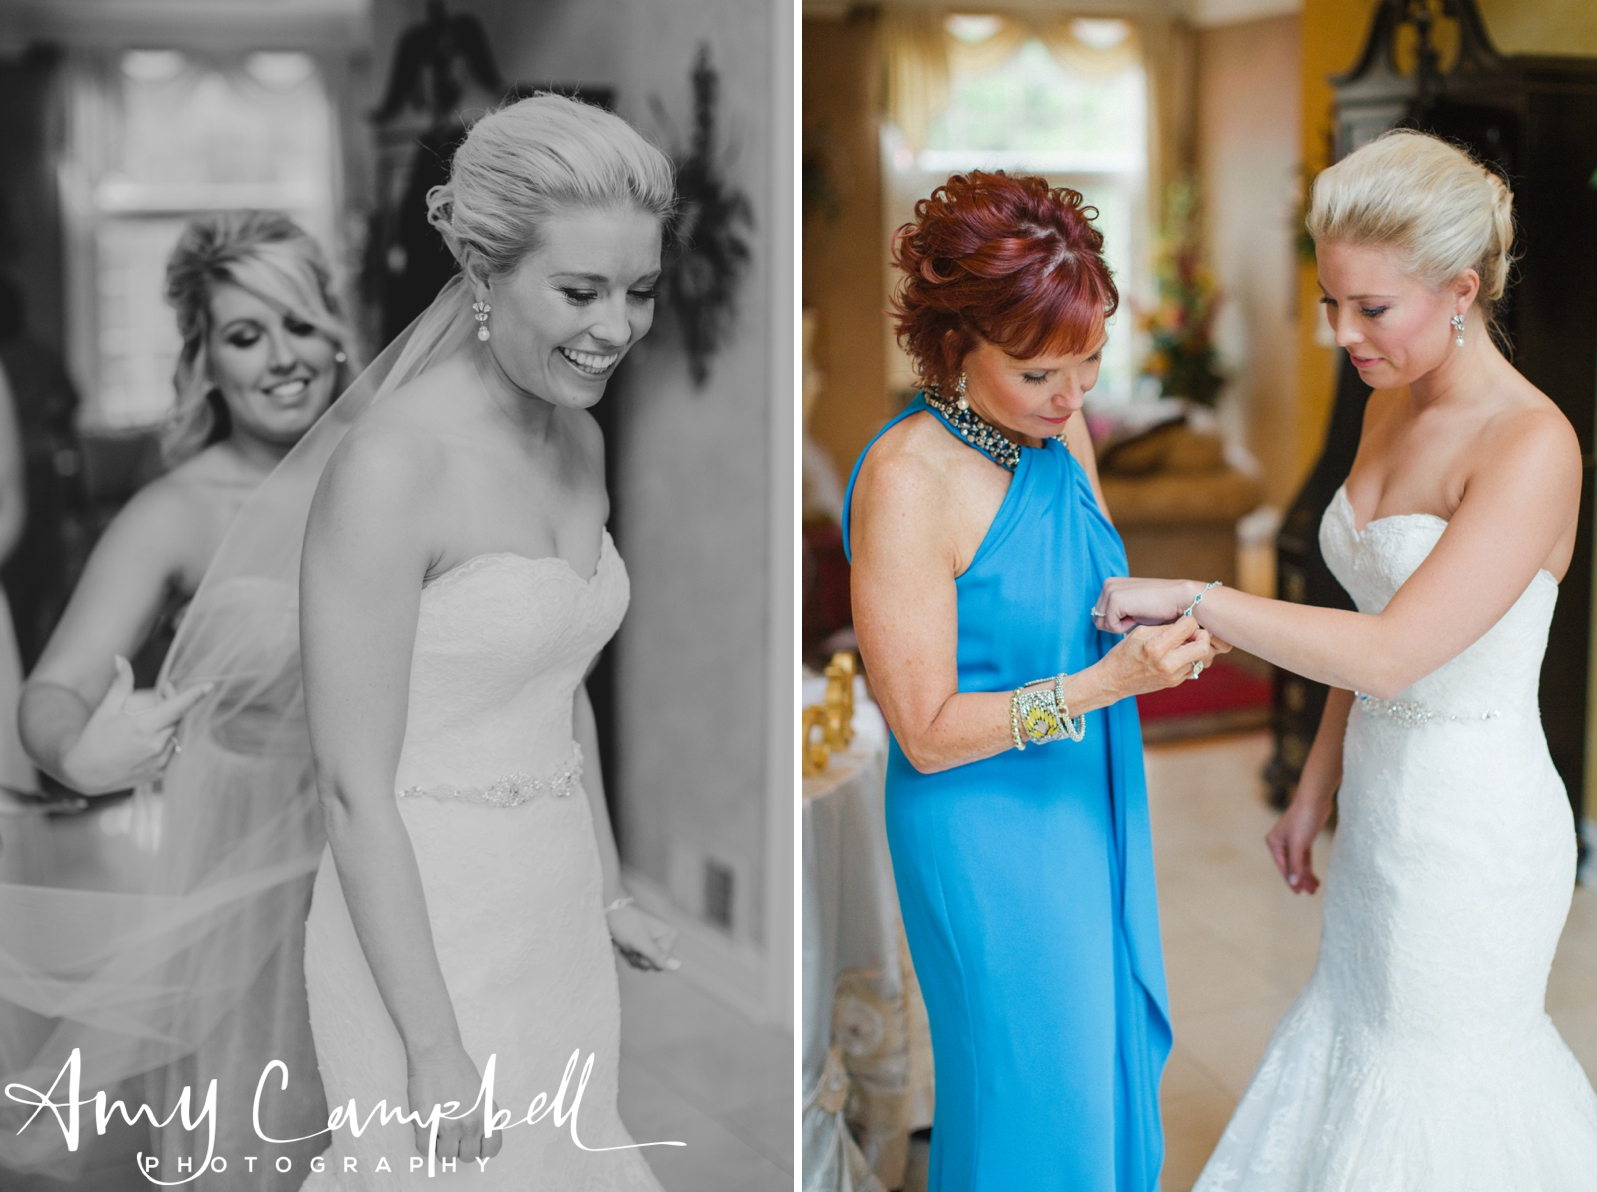 chelseamike_wedss_pics_amycampbellphotography_017.jpg